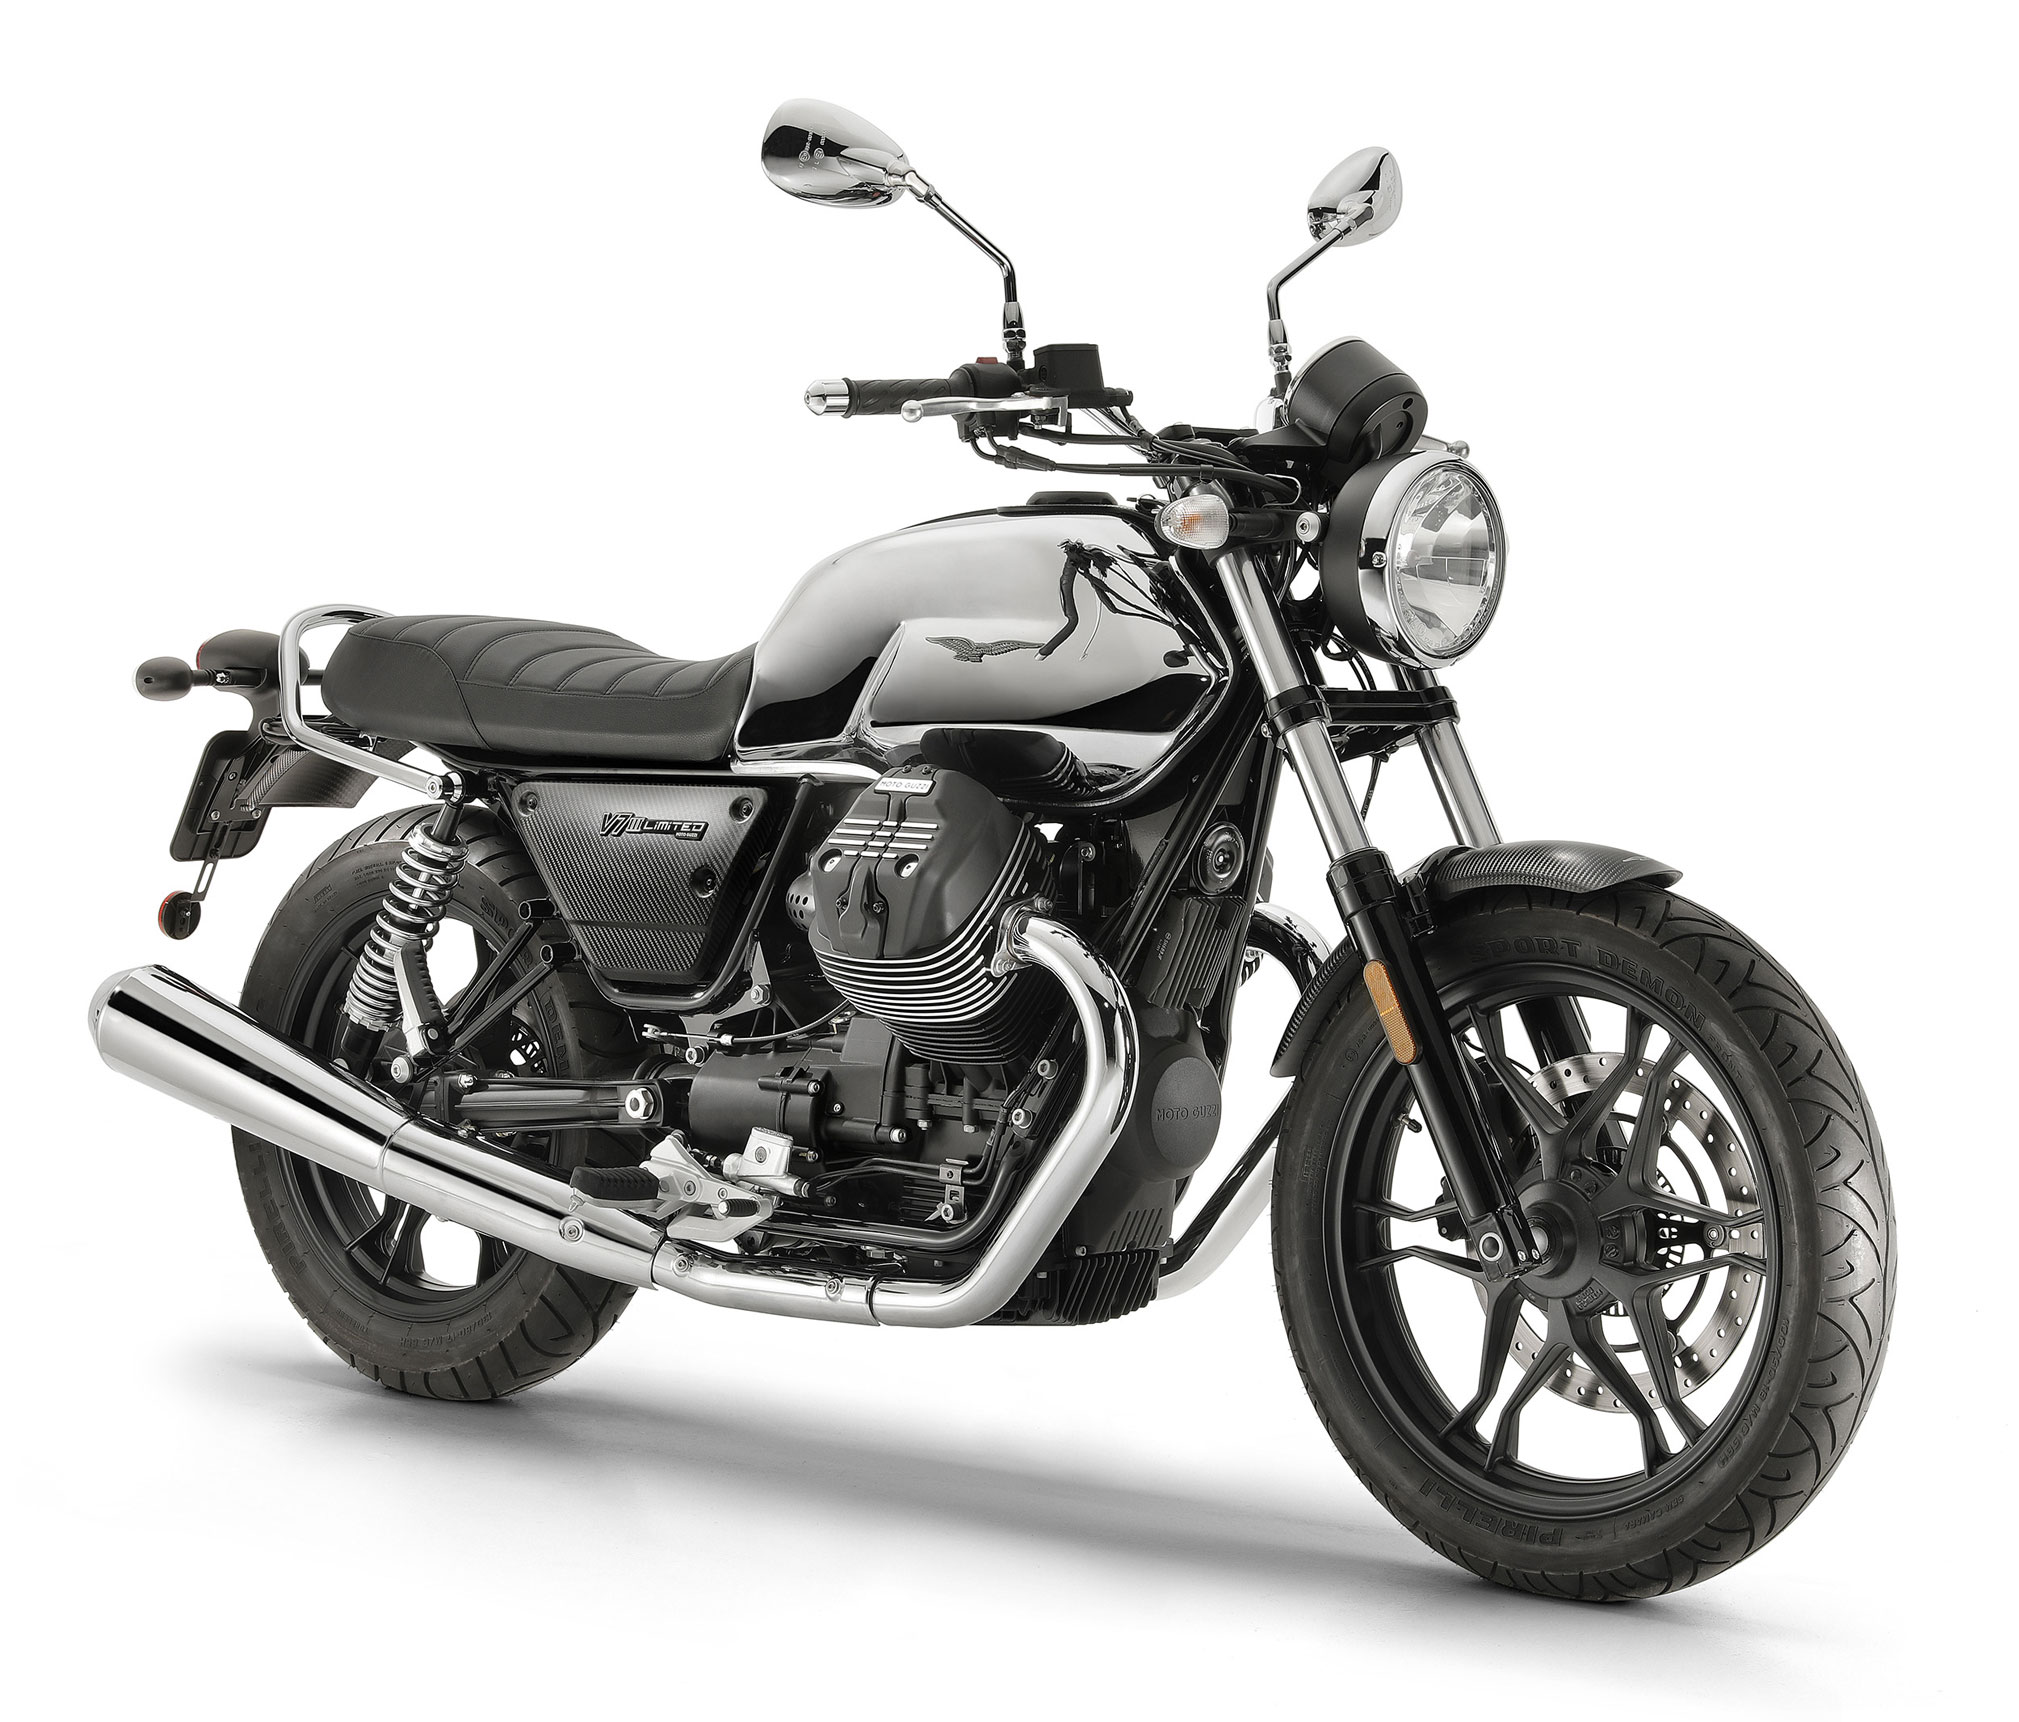 2019 moto guzzi v7 iii carbon shine limited guide total motorcycle. Black Bedroom Furniture Sets. Home Design Ideas